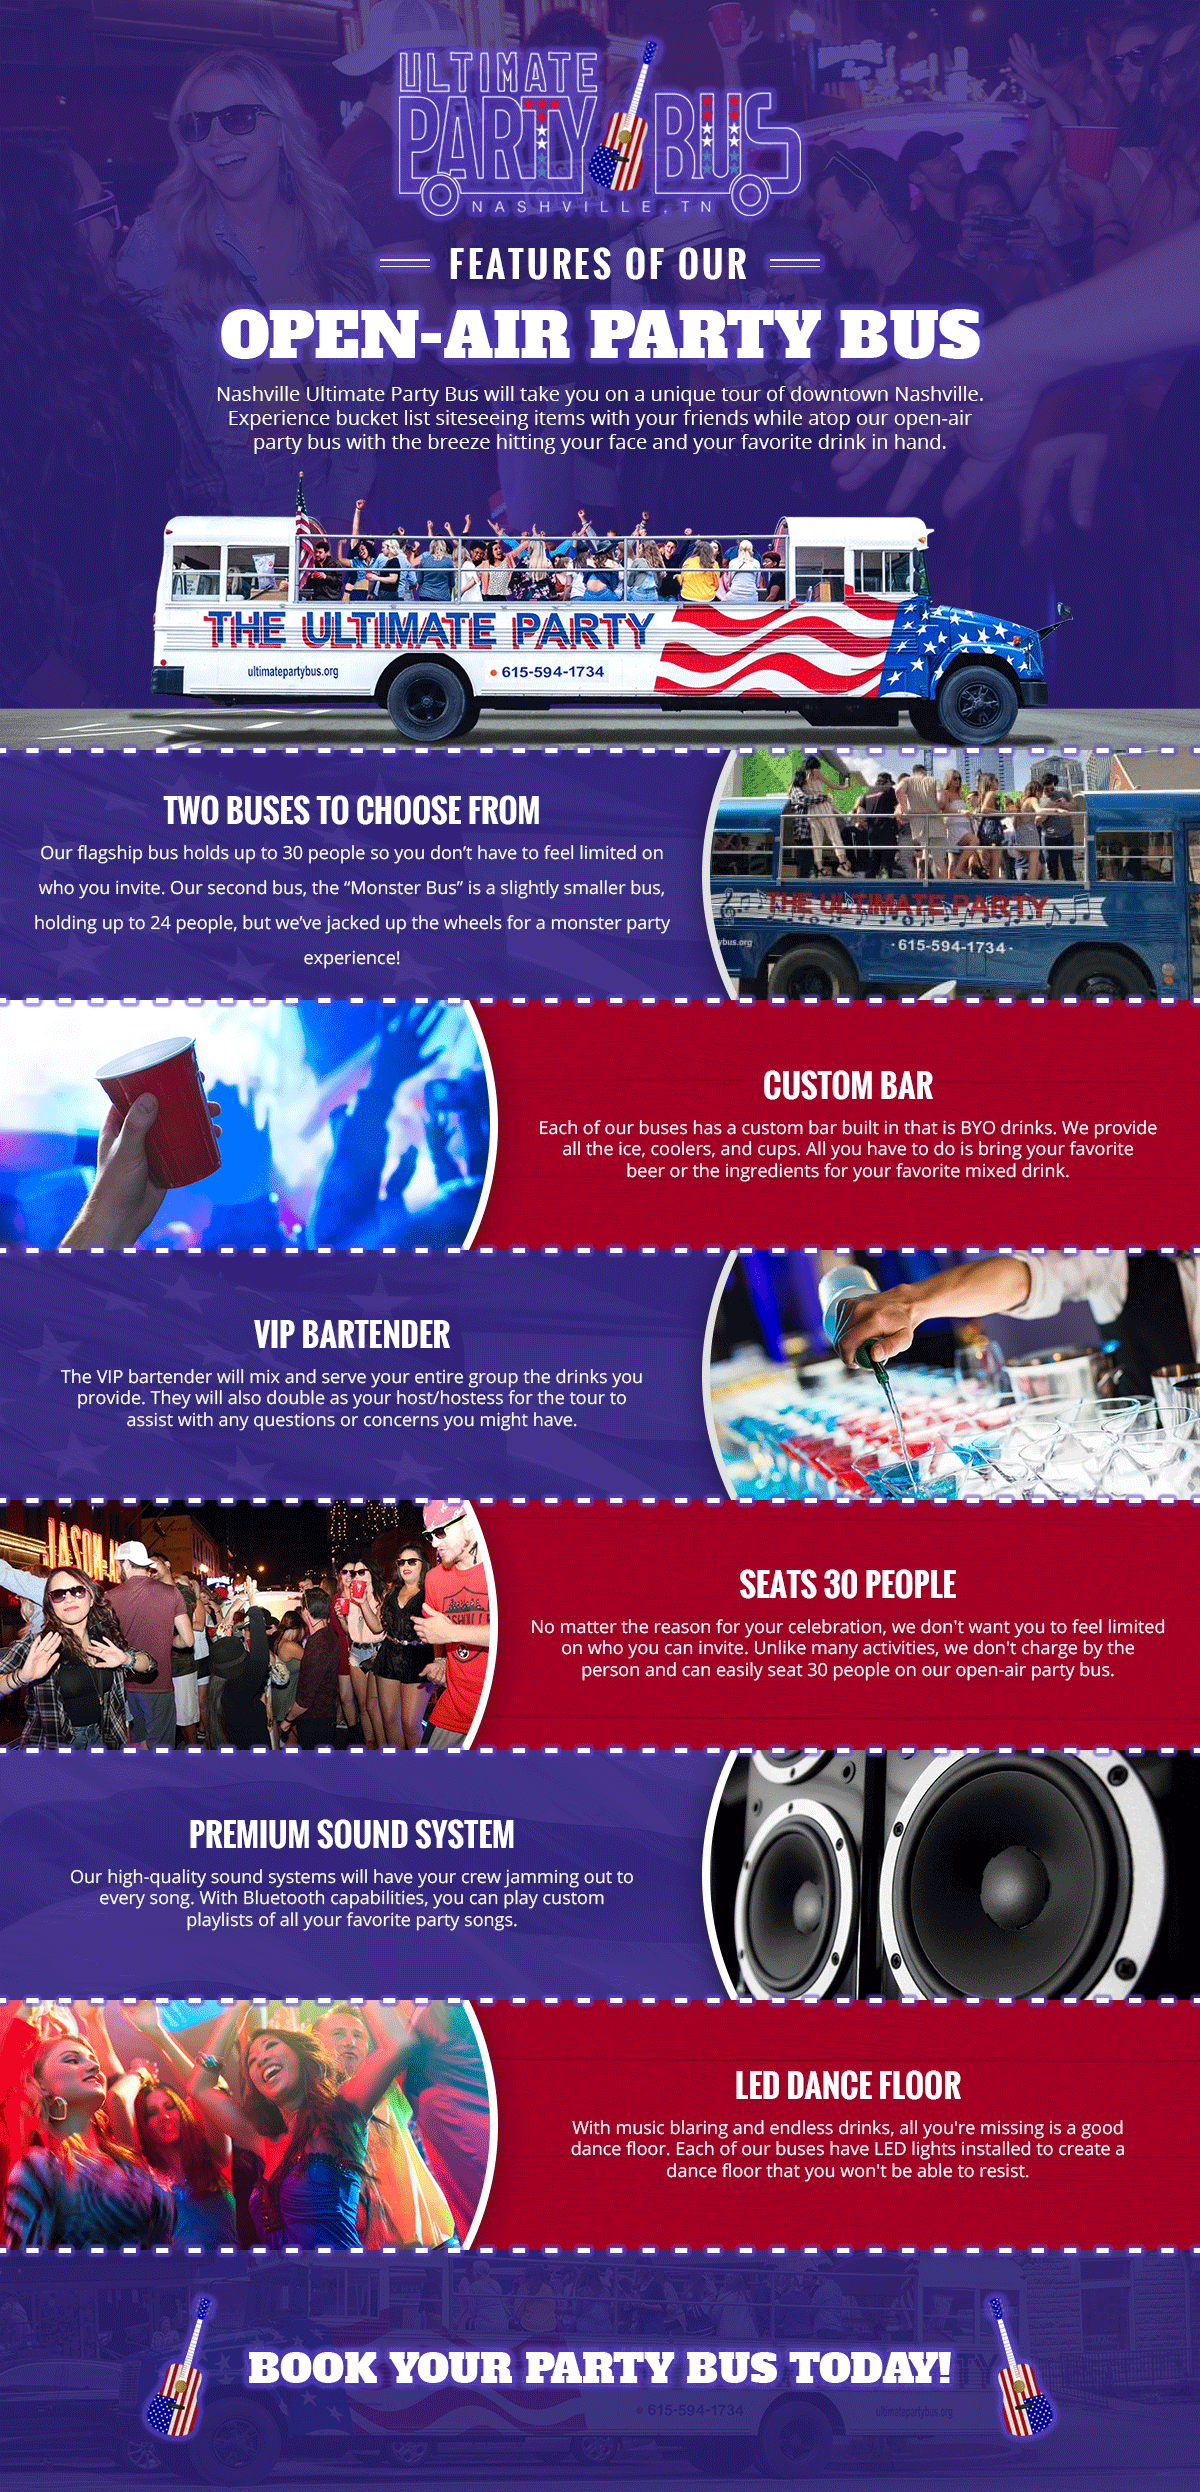 Features Of Our Open Air Party Bus | Ultimate Party Bus